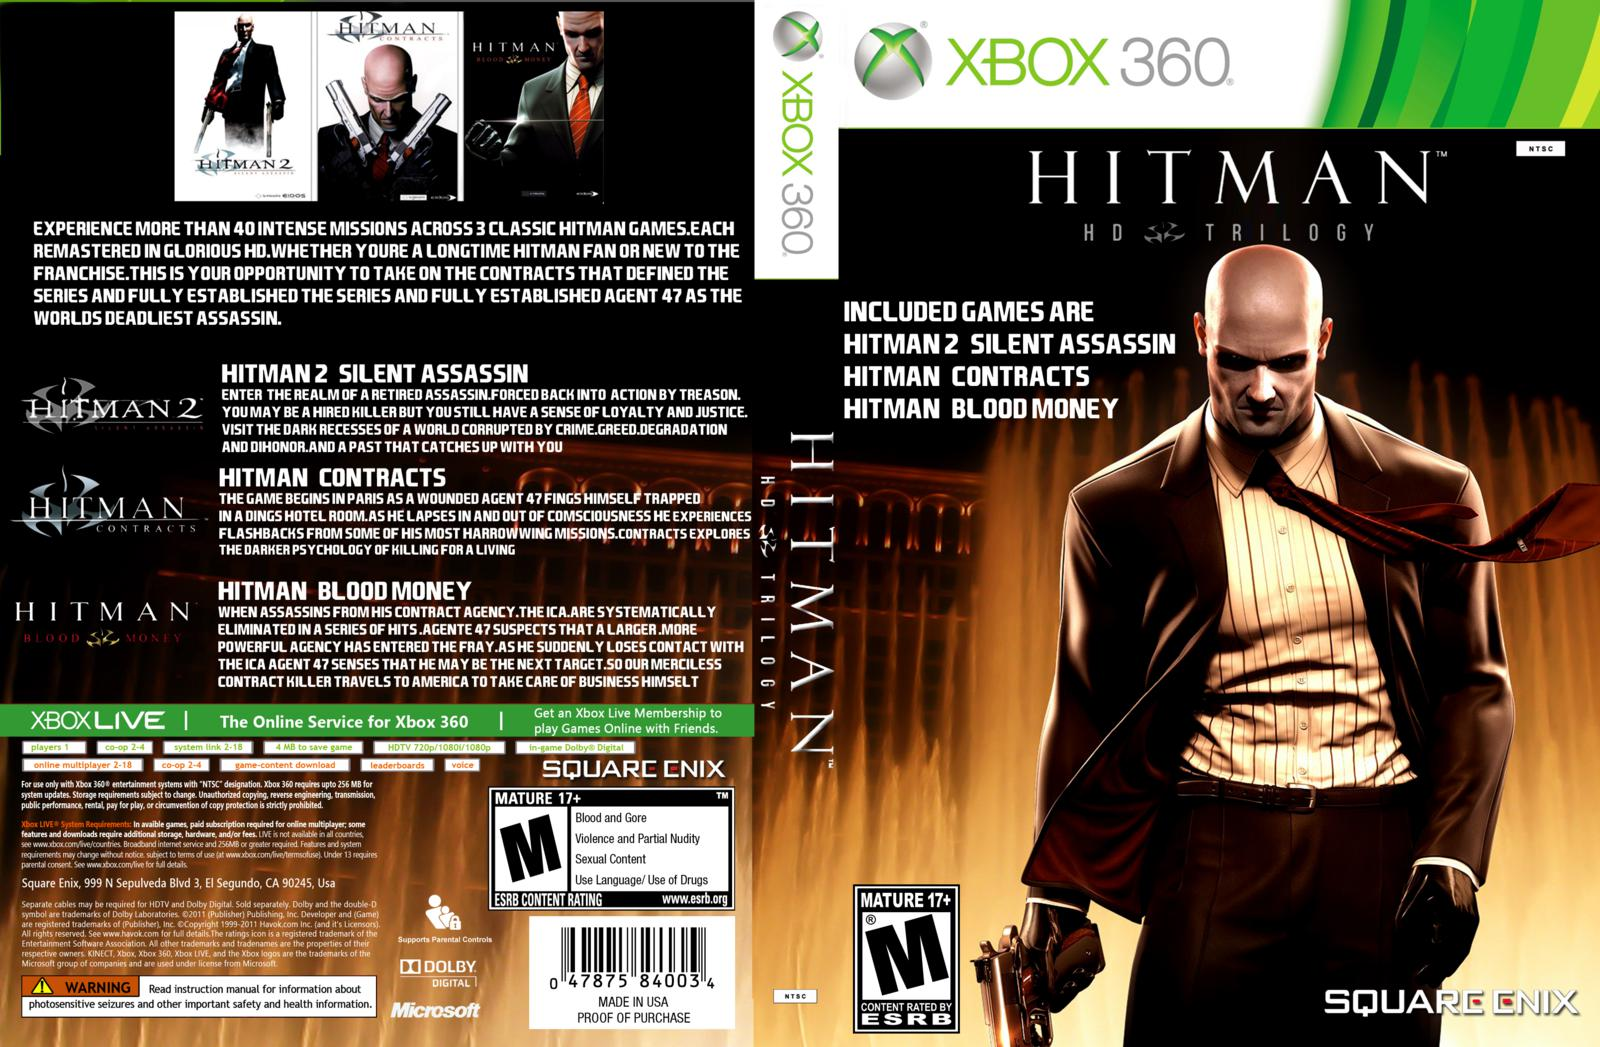 Capa Hitman HD Trilogy Xbox 360